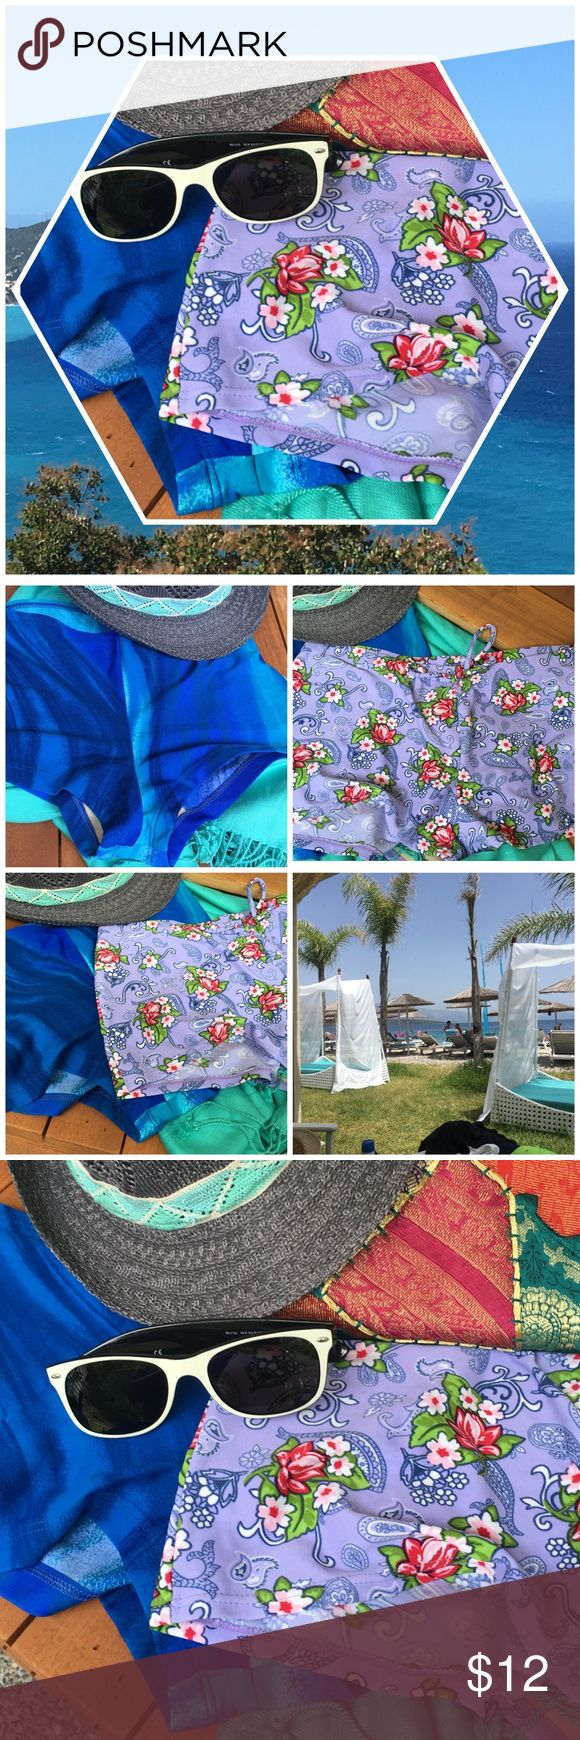 Boy-short swim bottoms See Pics • included in this listing 2 bottoms • never wore because I didn't feel comfortable in them • fits med to large best• sold together• cute with tankini or bikini top• (no trades or PP) review pics prior to purchase 📦 thanks @keg90 Swim Bikinis